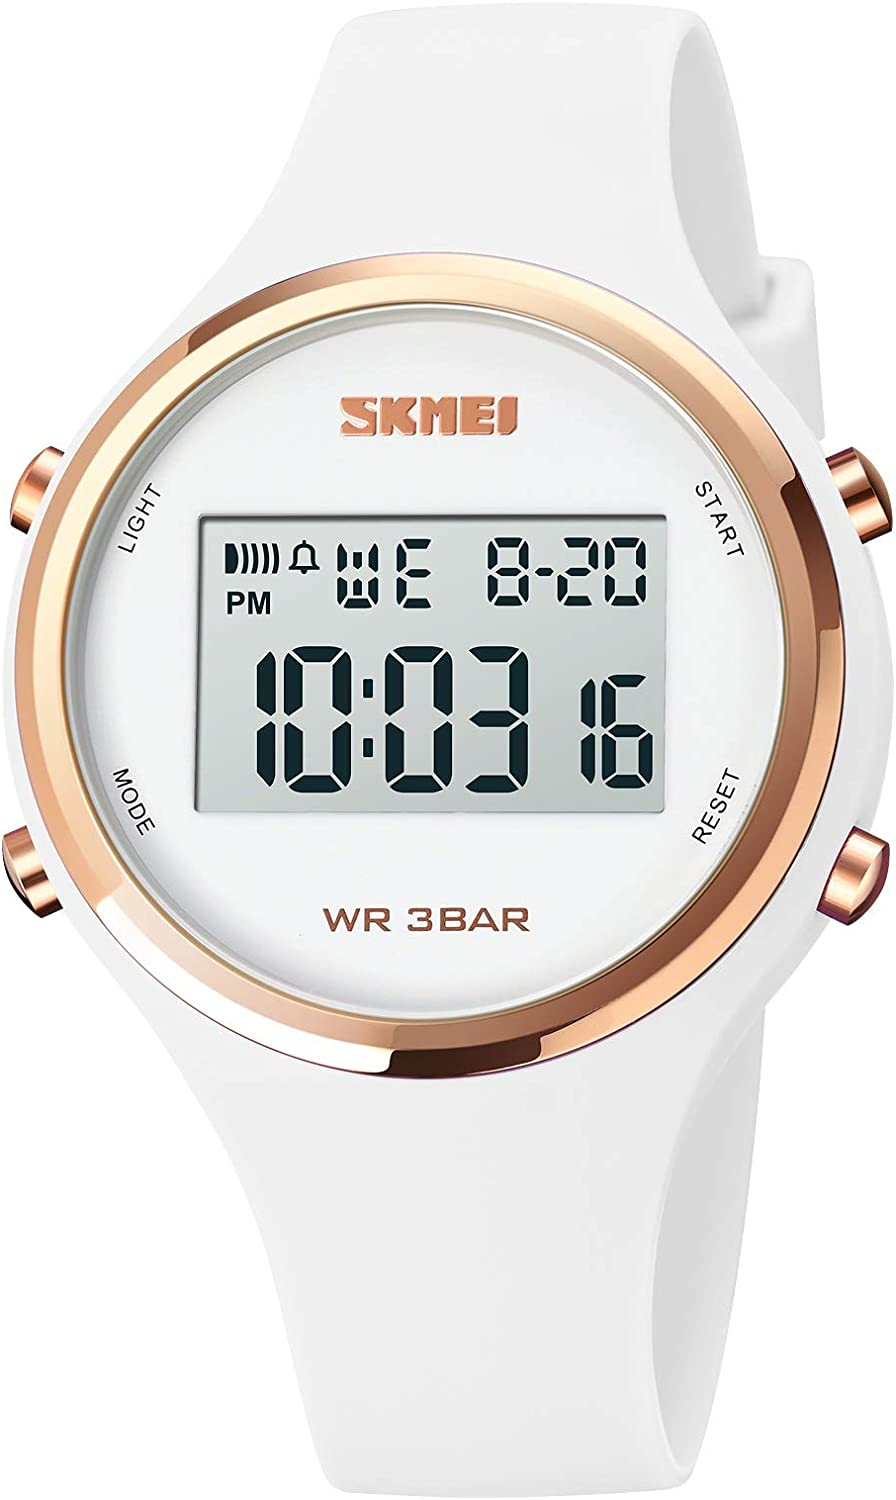 Skmei Woman's Digital Max 75% OFF Watches Sports Simple for La Outlet SALE Wrist